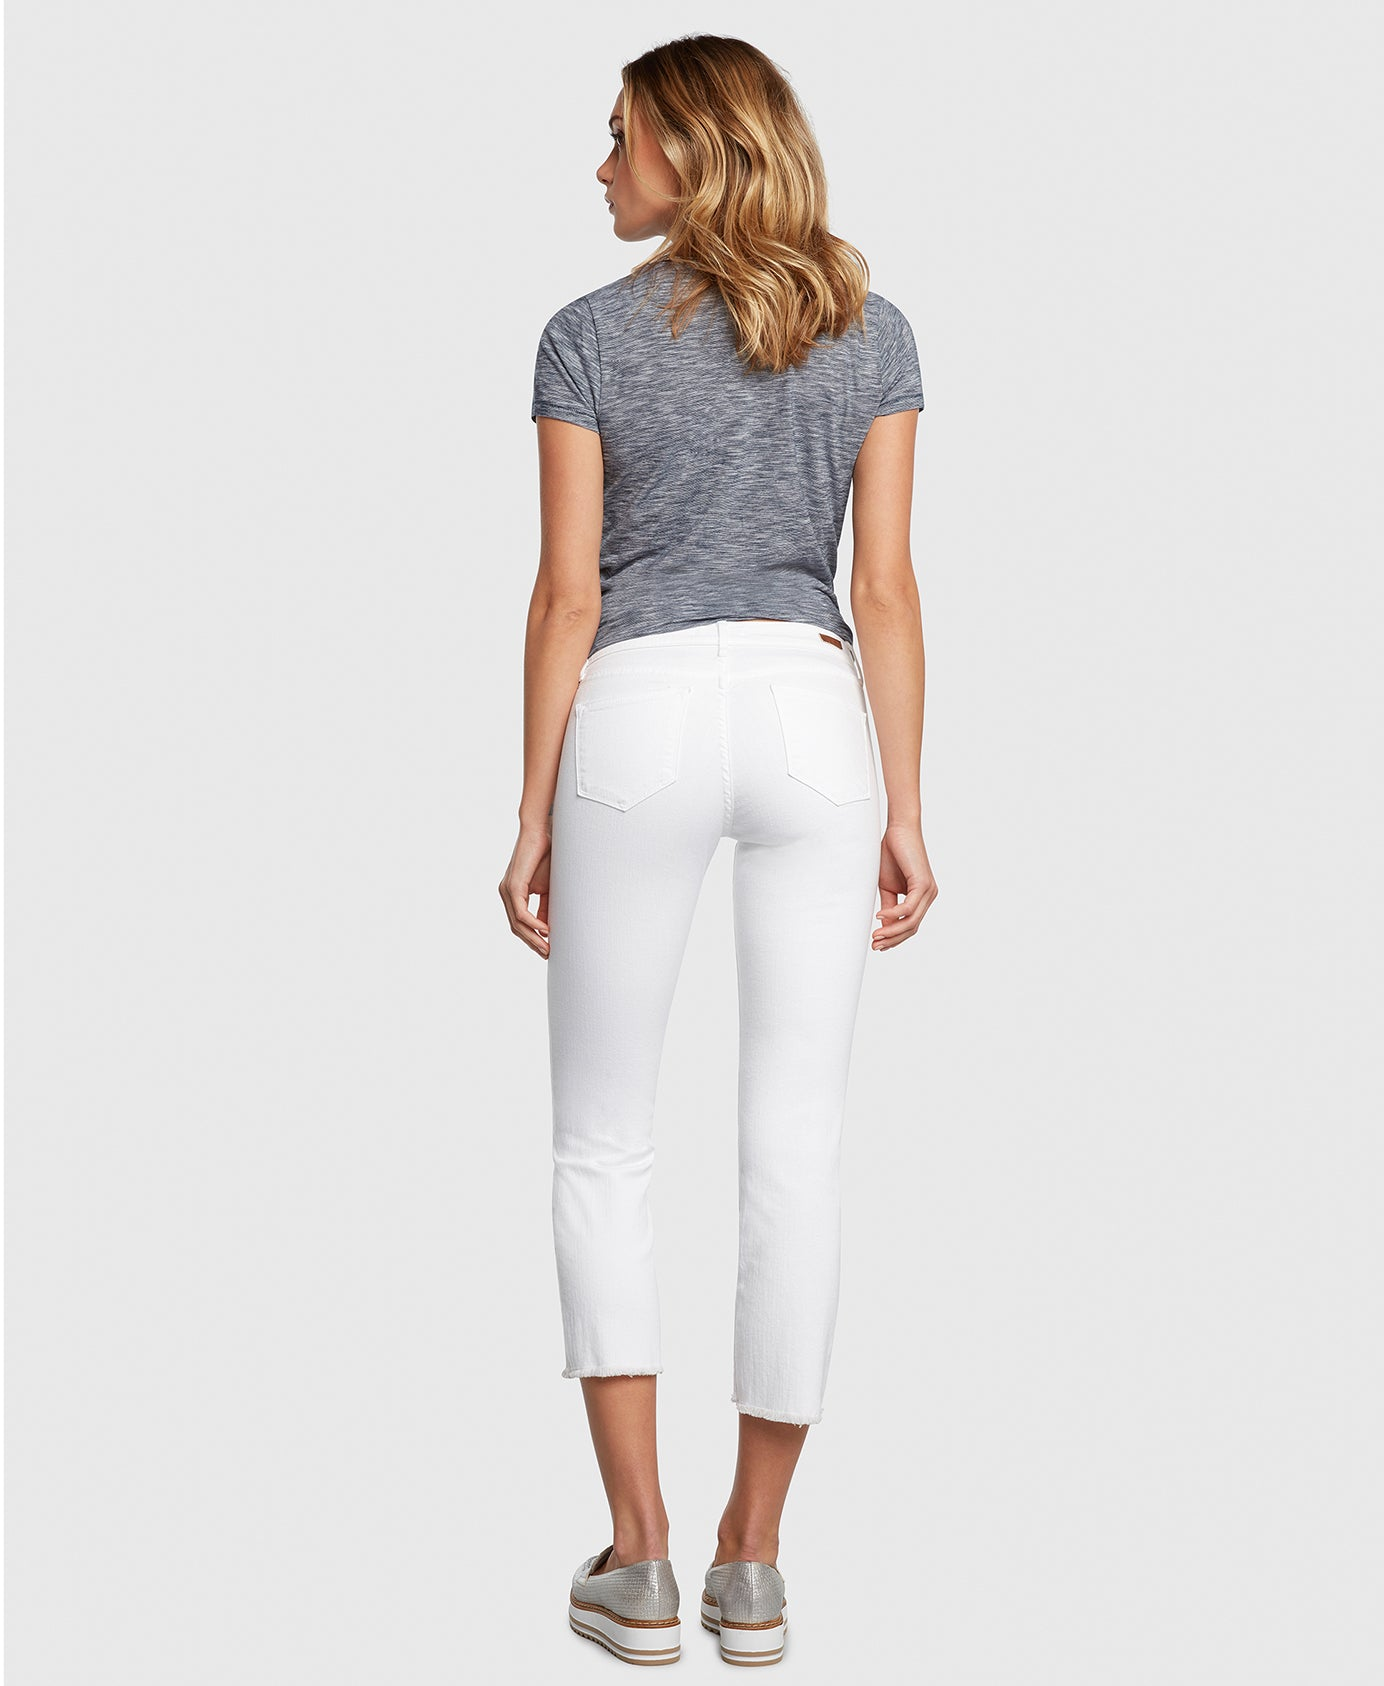 Principle OPTIMIST in White cropped jeans back